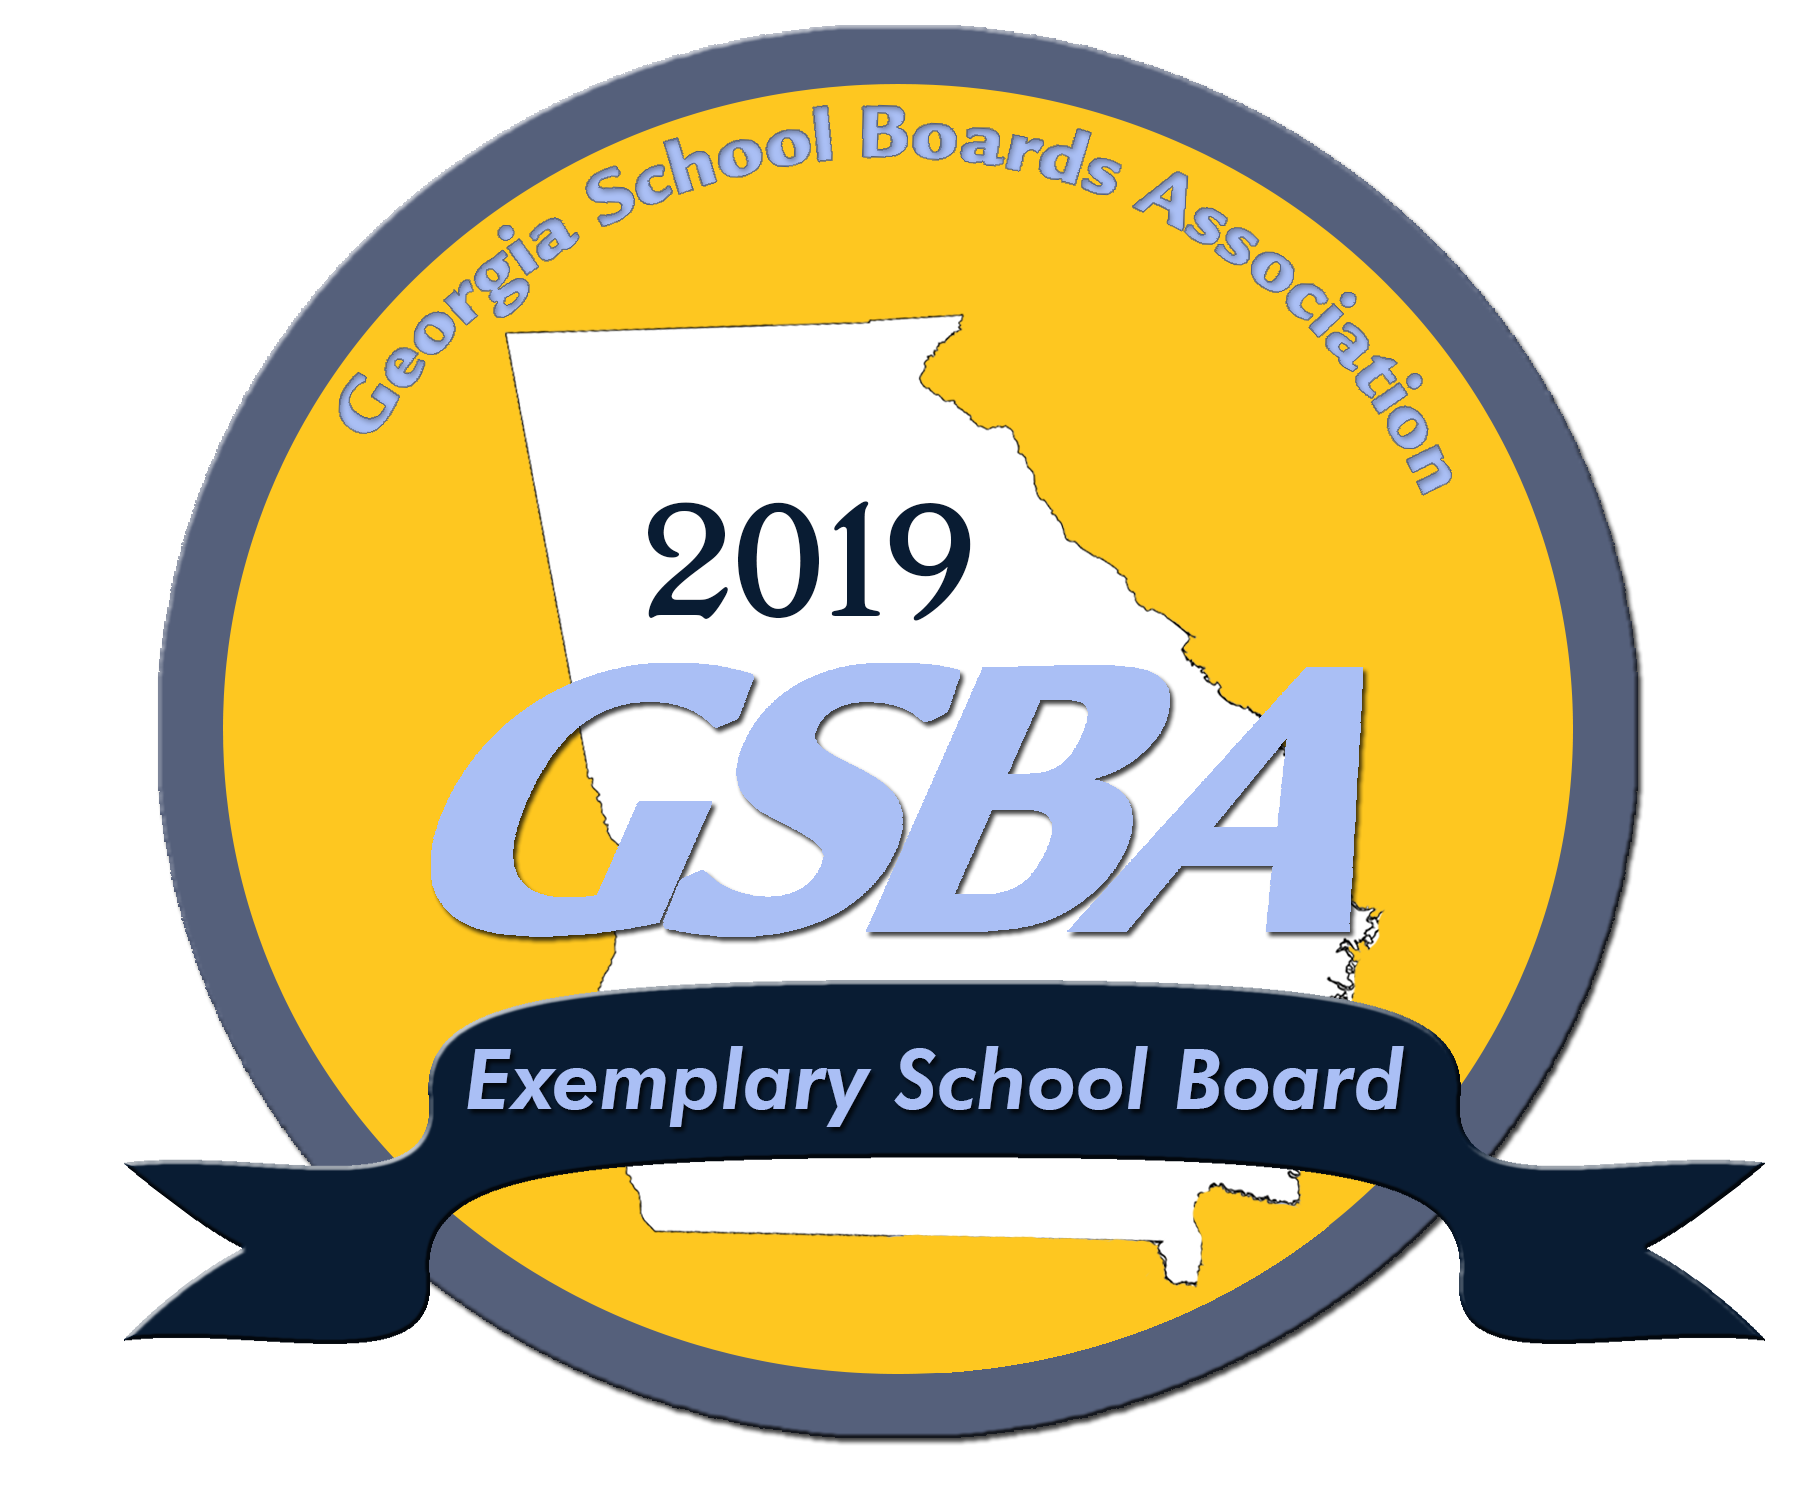 GSBA Exemplary School Board 2019